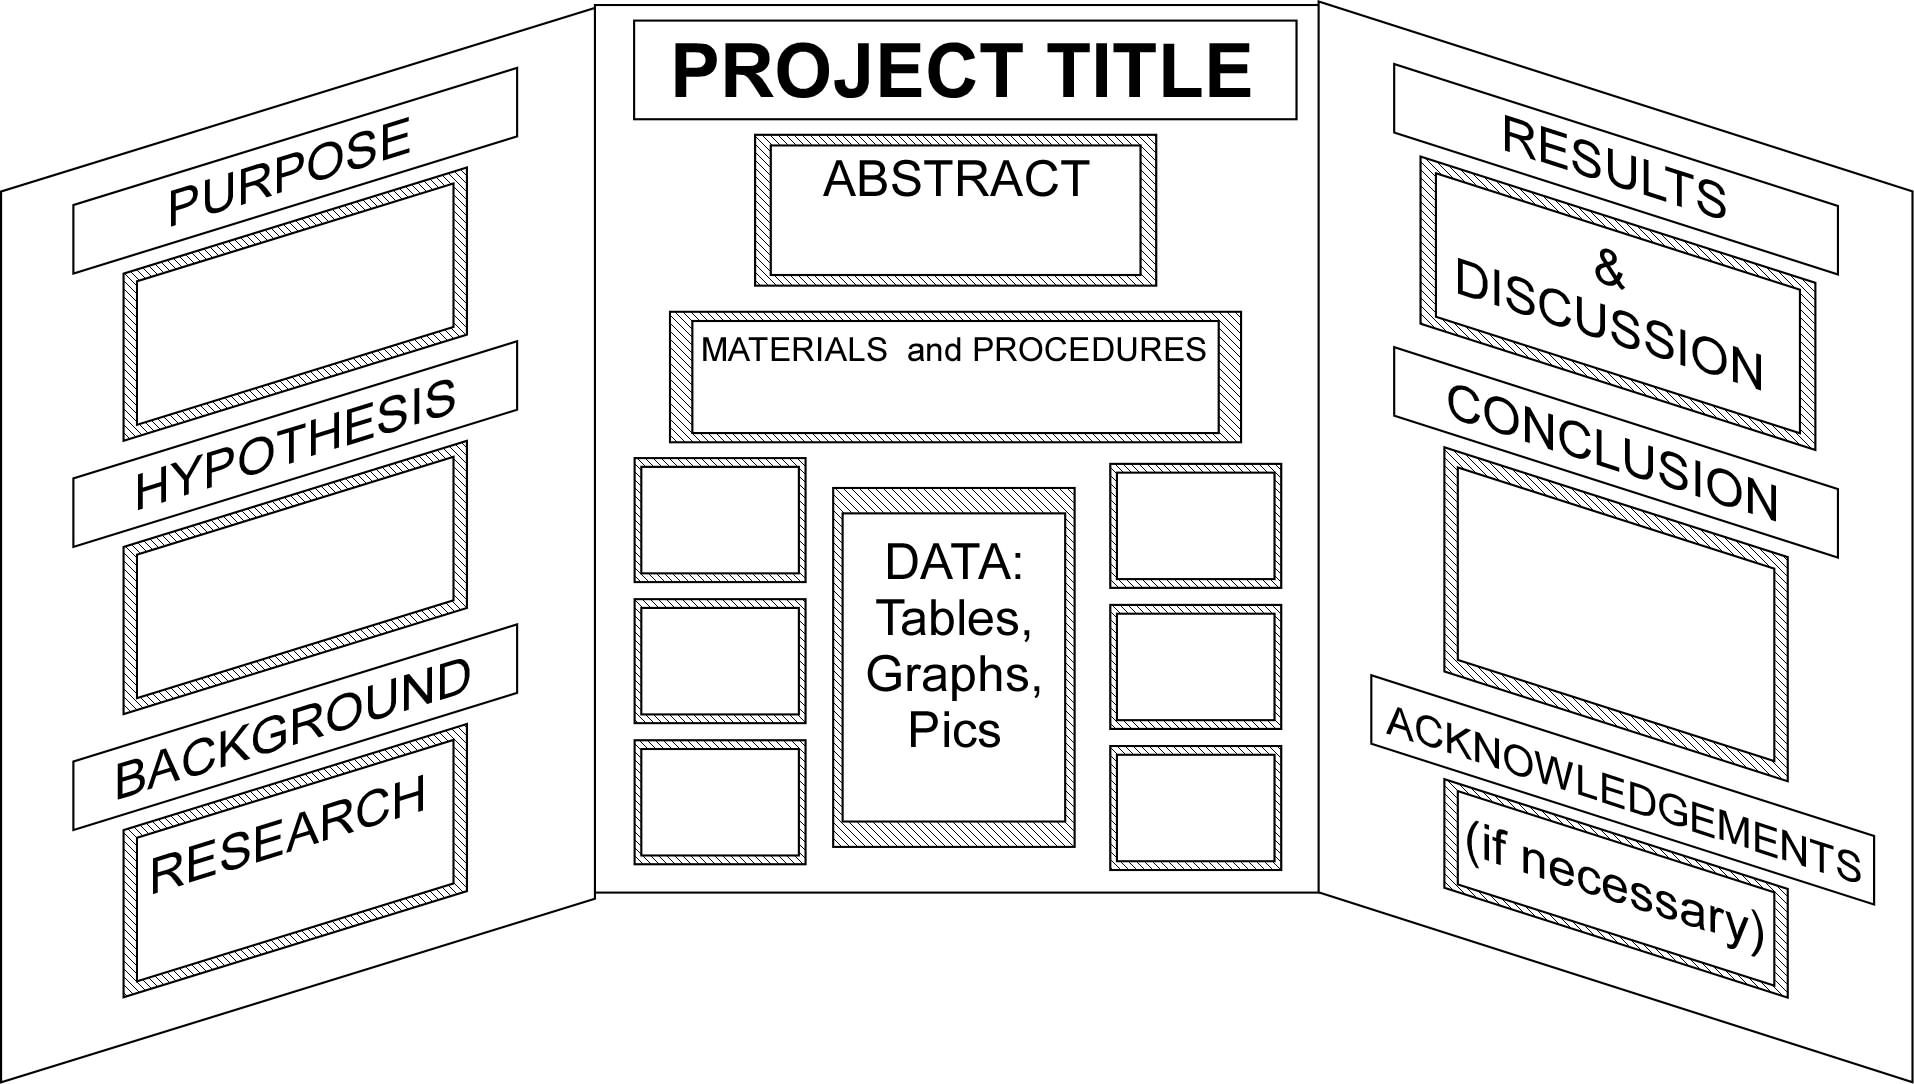 RING BINDER SETUP SCIENCE FAIR PROJECT Step By Step ppt download      SETUP SCIENCE FAIR PROJECT Step By Step